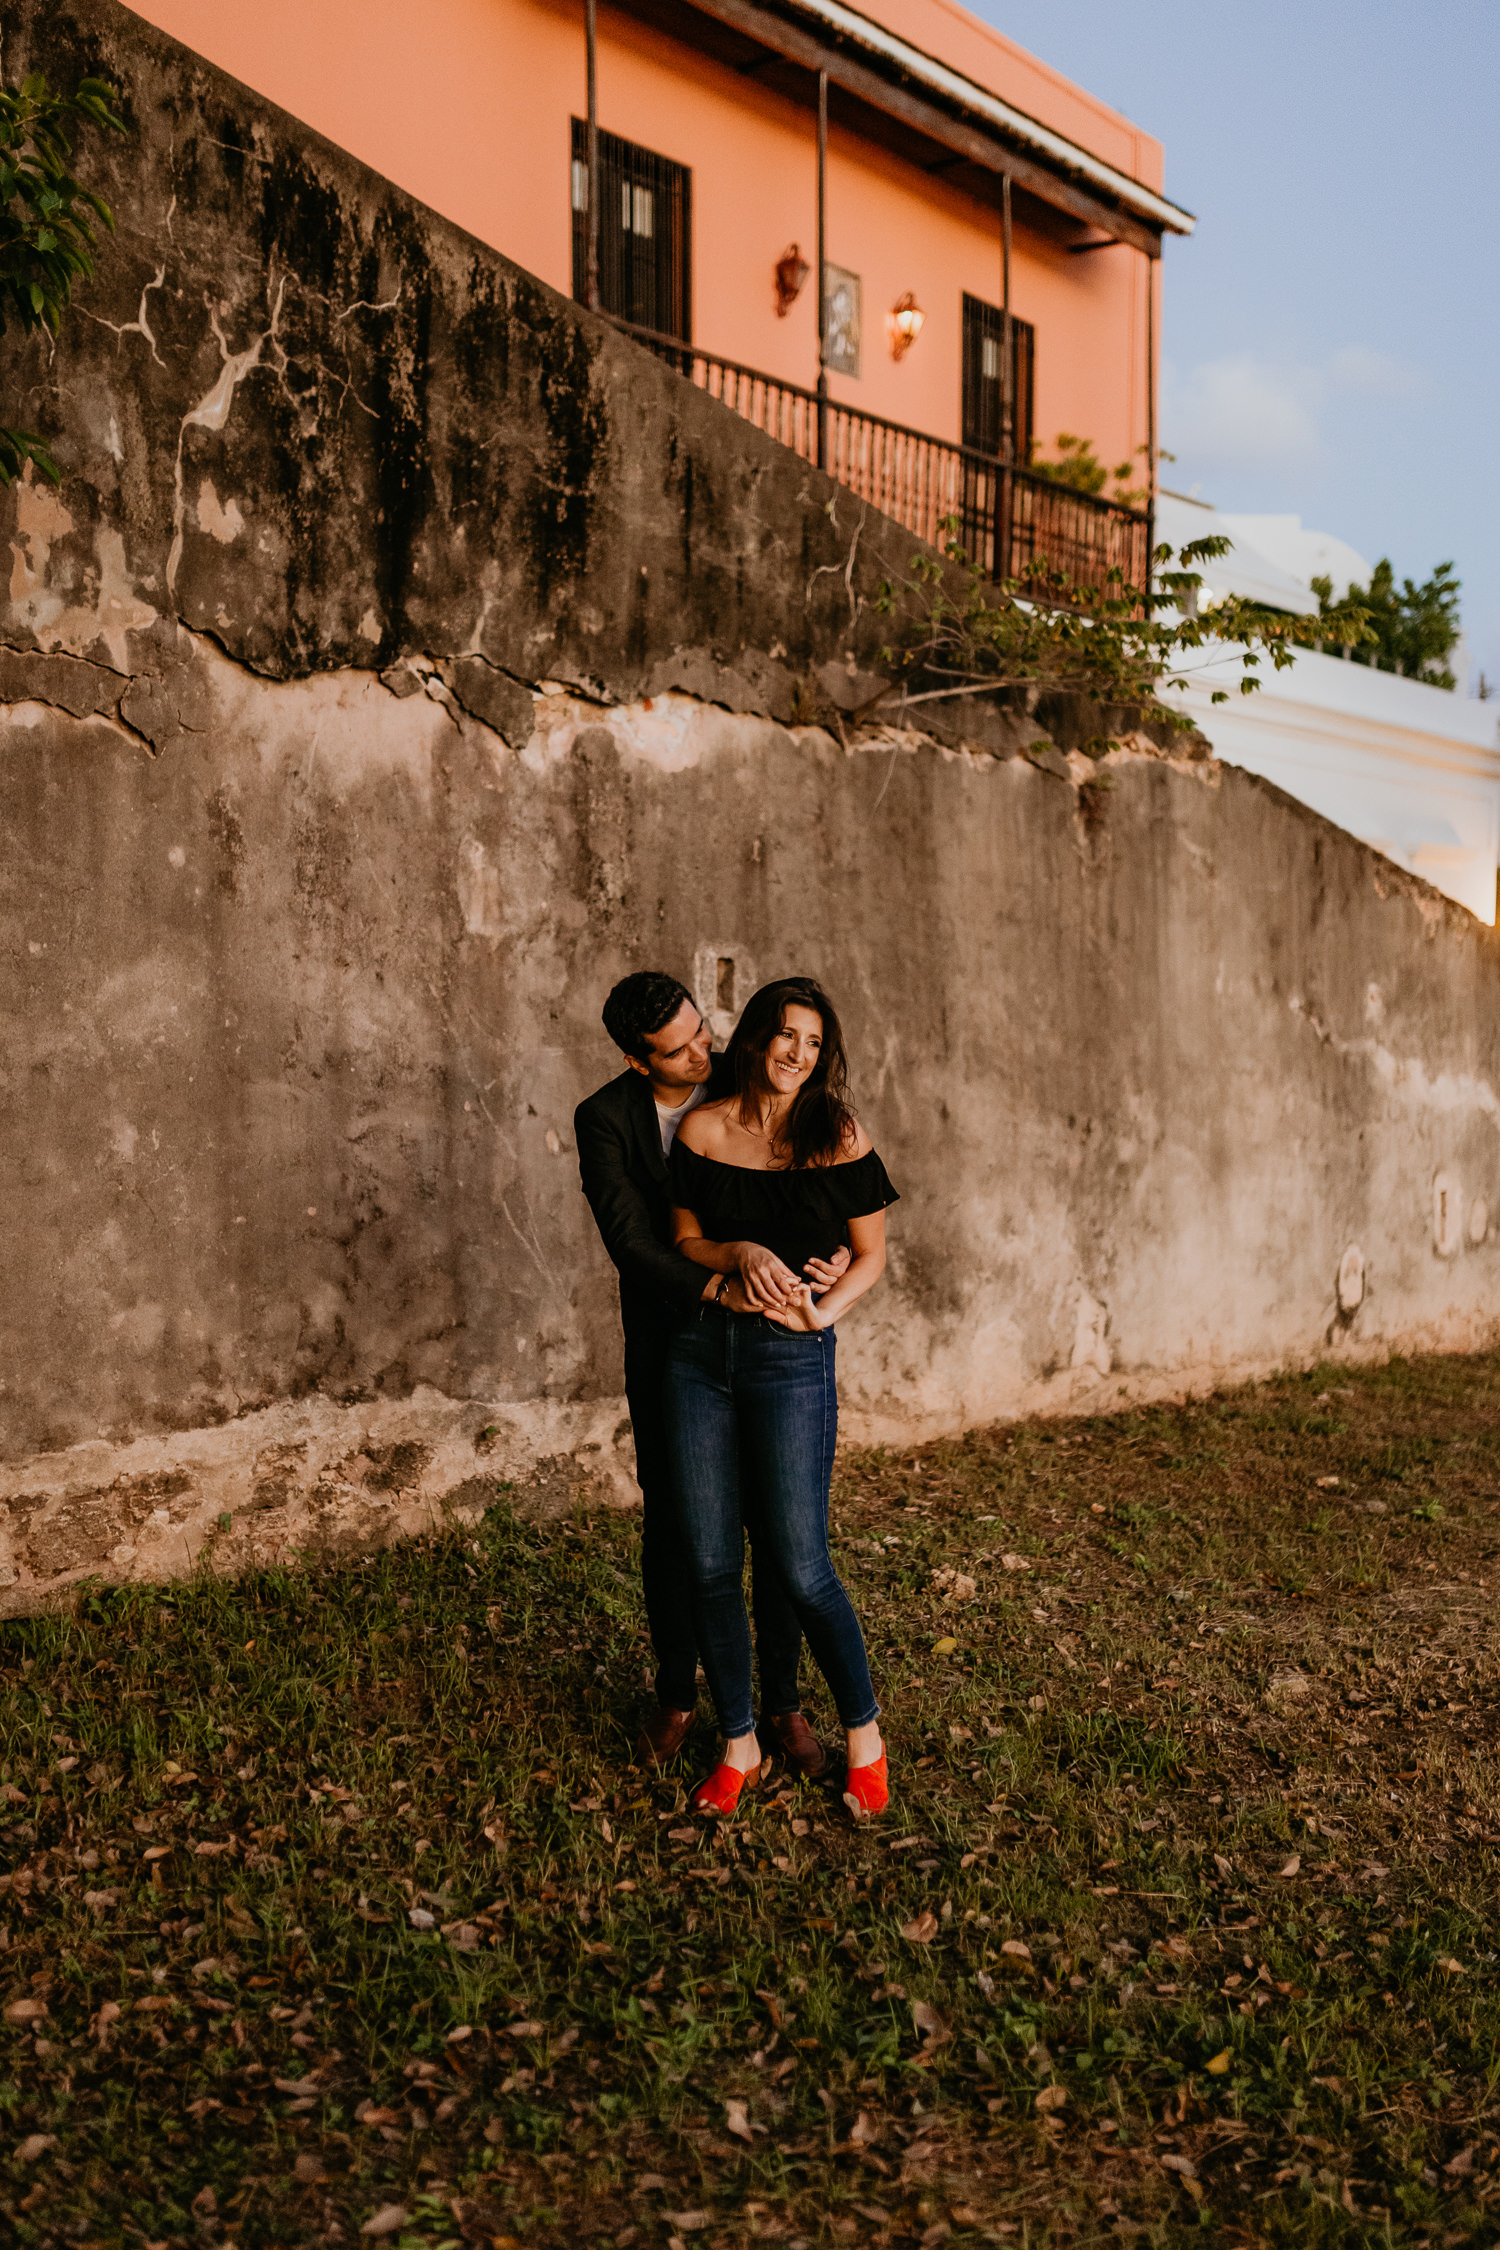 man hugging woman from behind, her smiling hard, in front of stone wall sunset